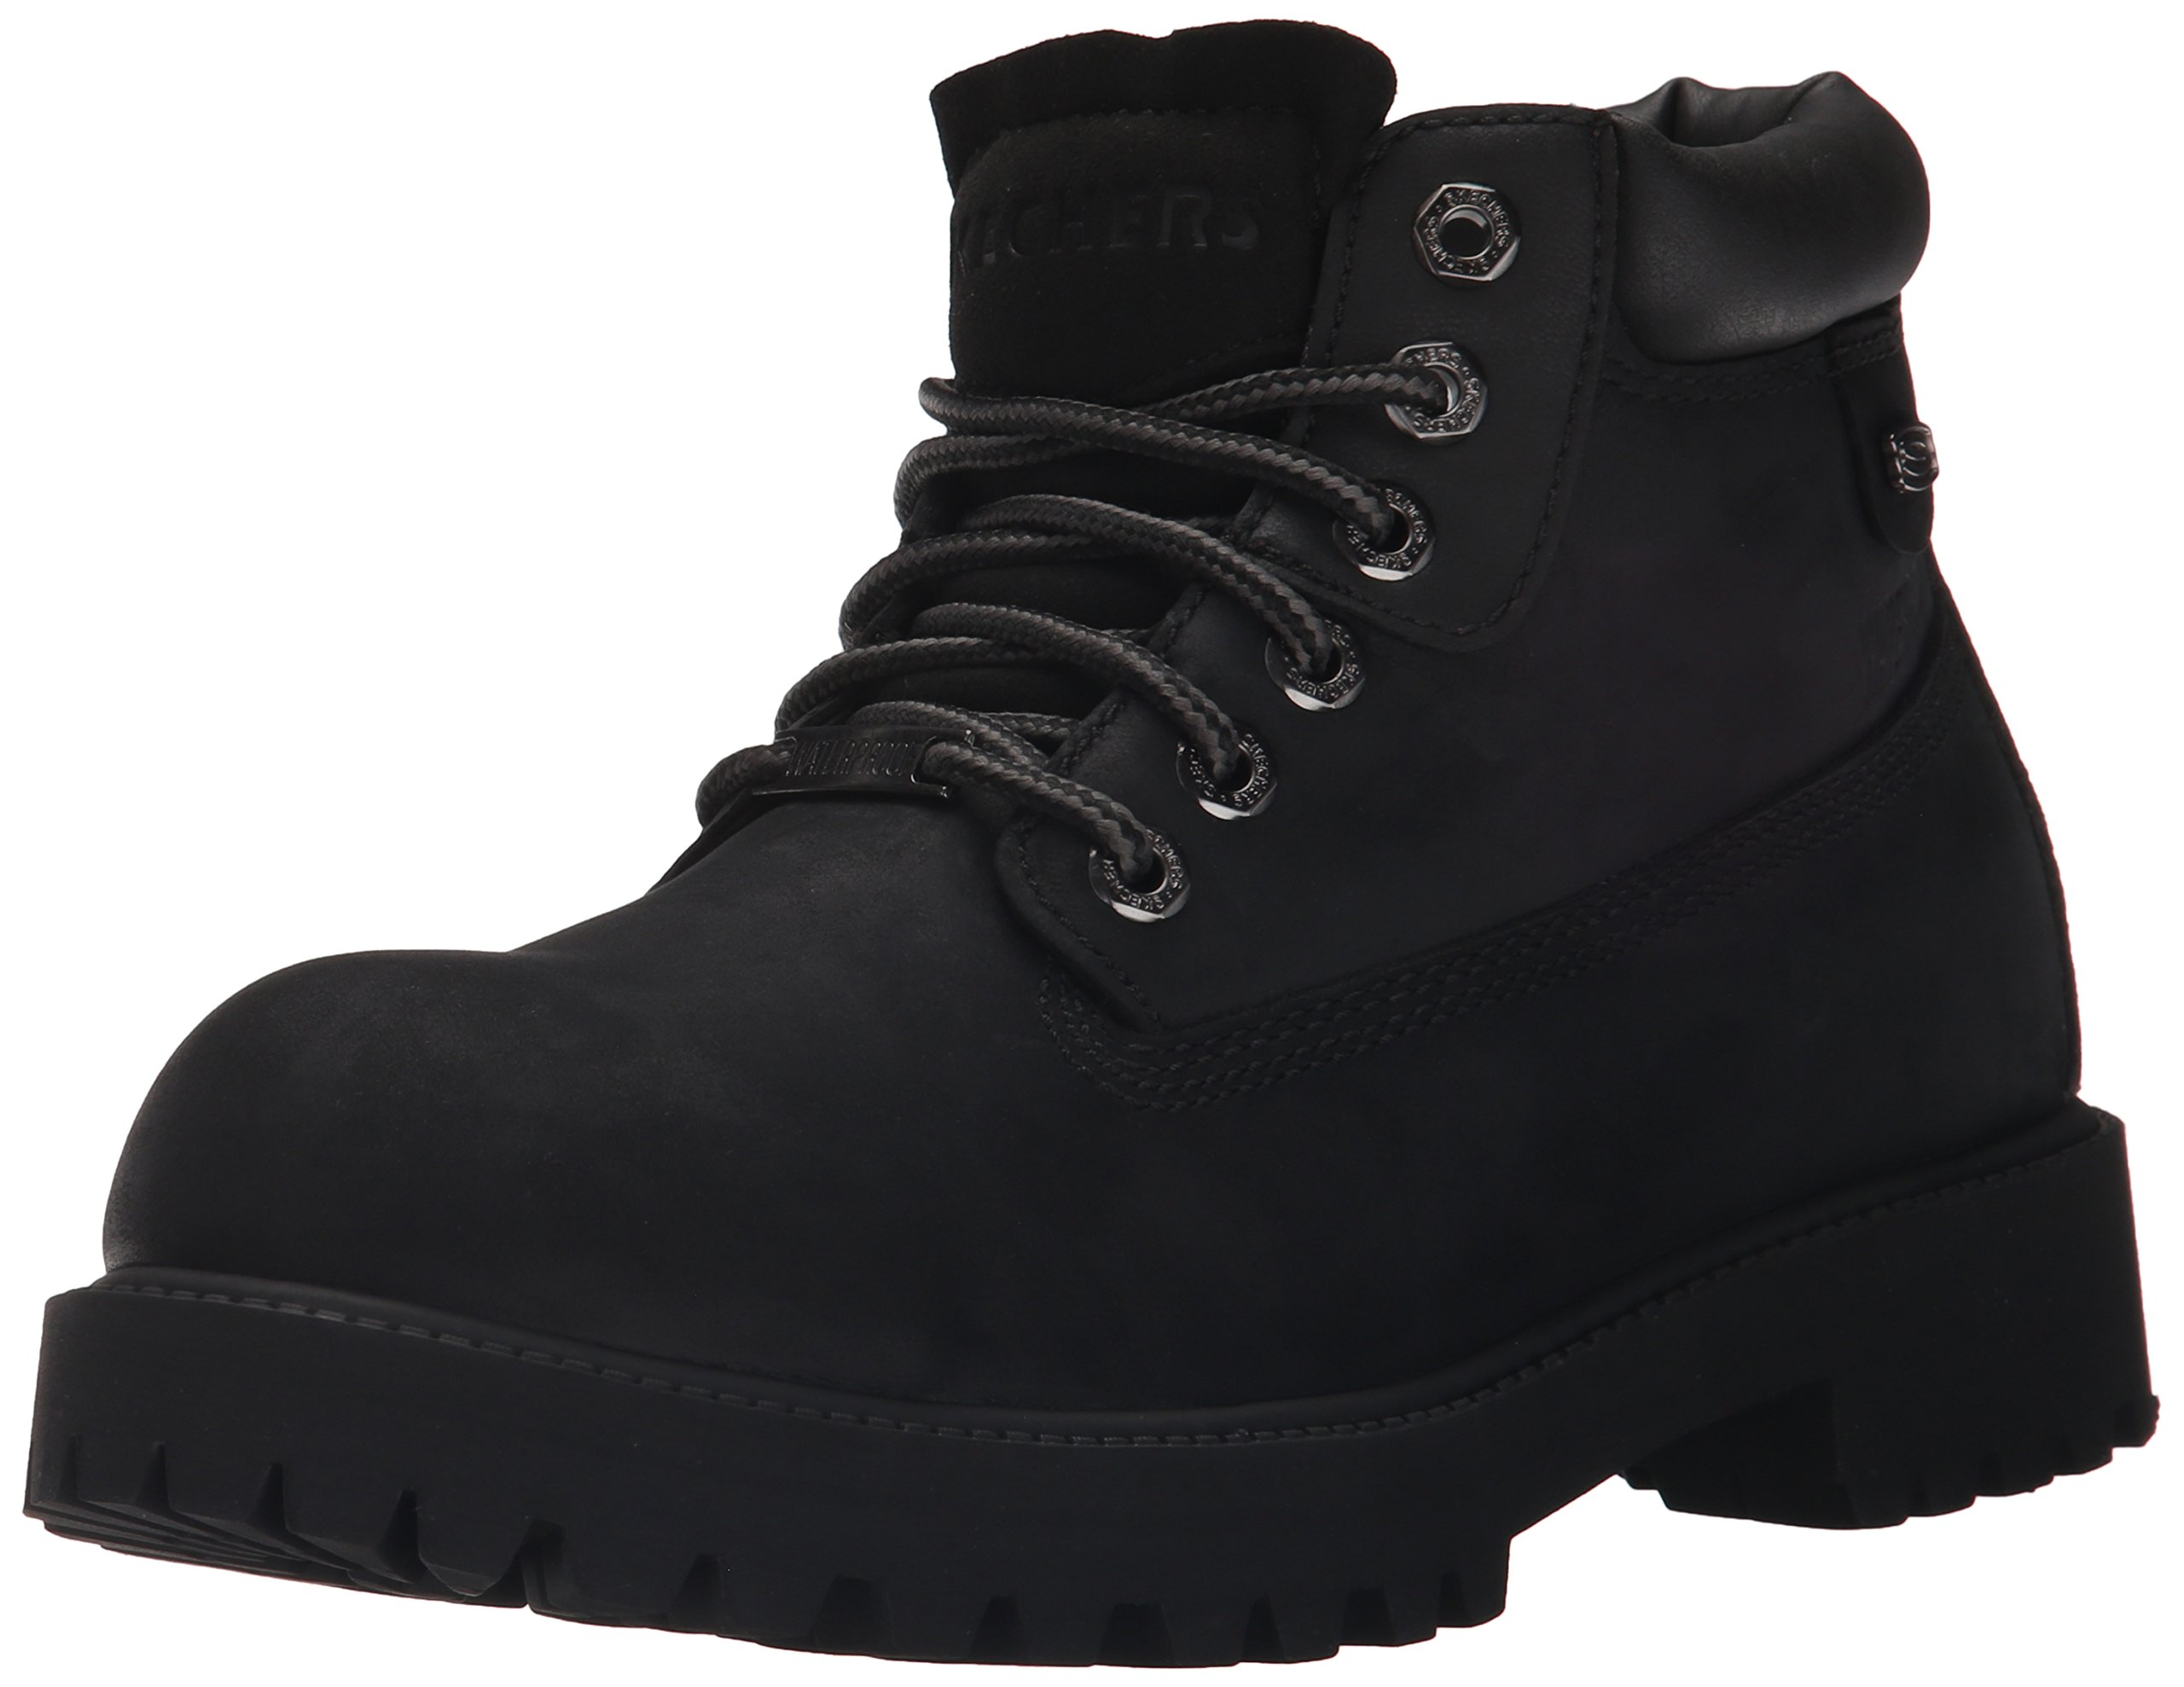 cb2d920c5978 ... Trekking   Hiking Boots · Skechers Men s Sergeants Verdict Chukka Boot